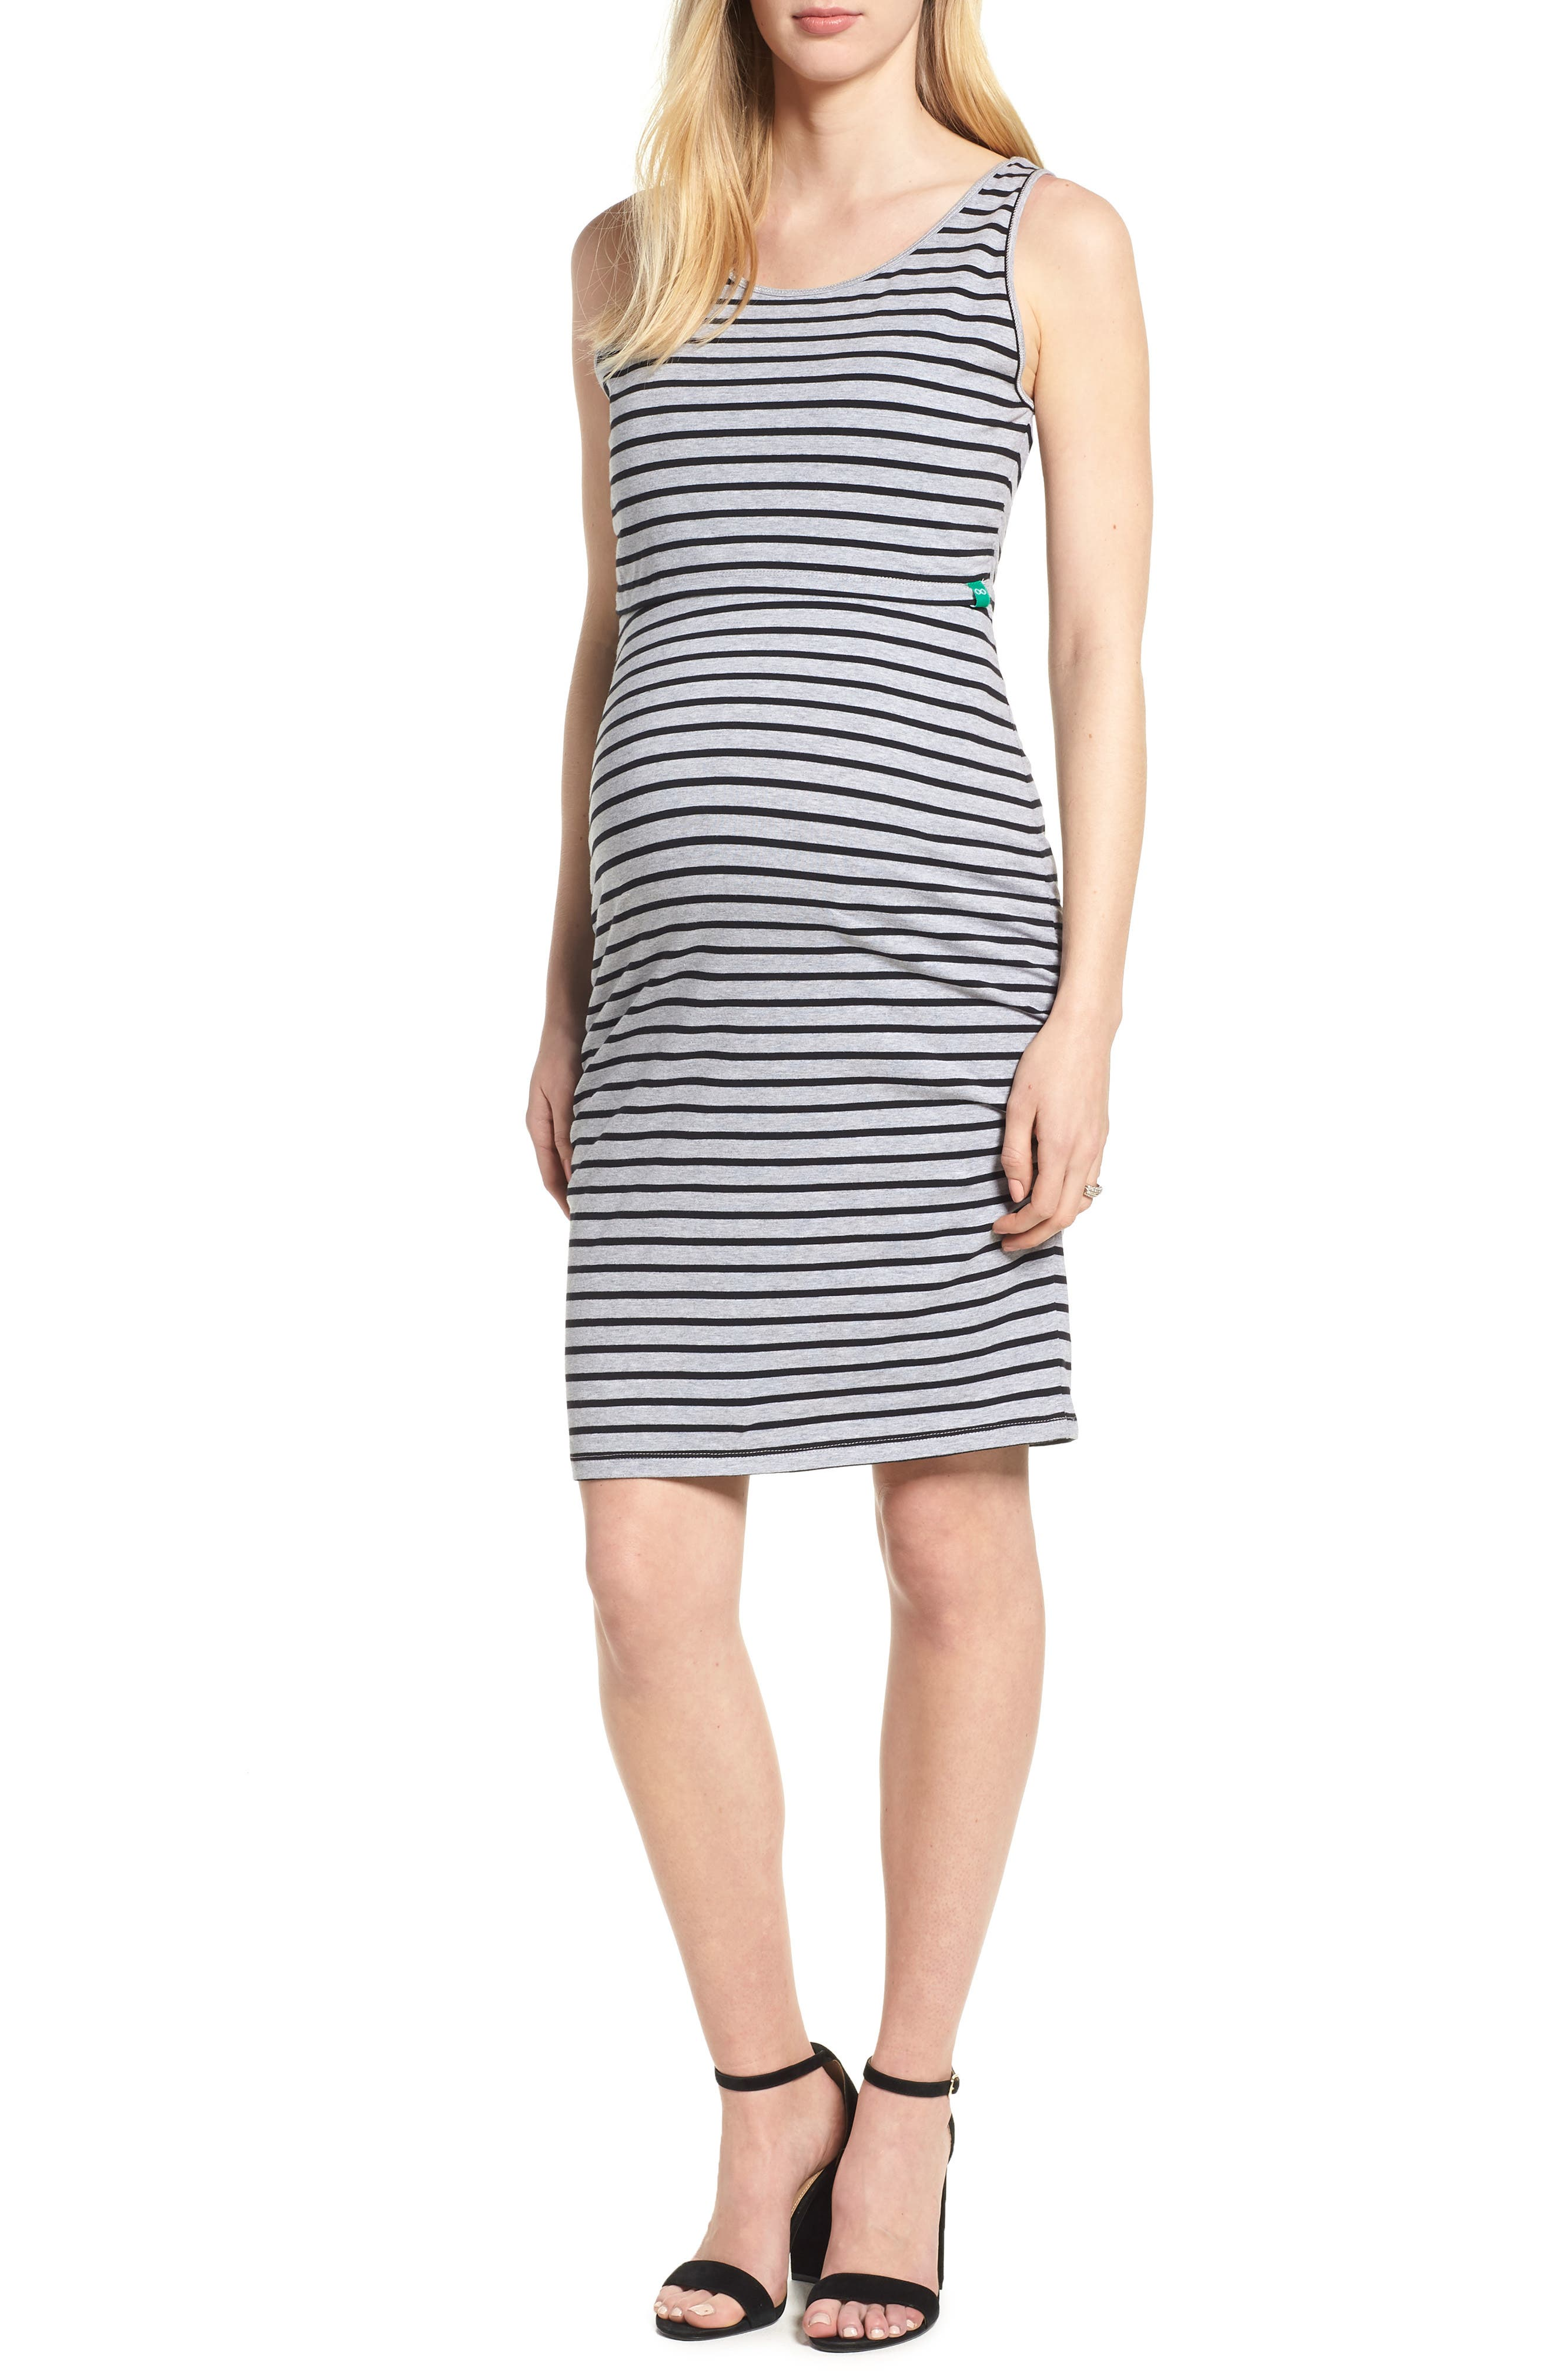 Modern Eternity Maternity/Nursing Tank Dress